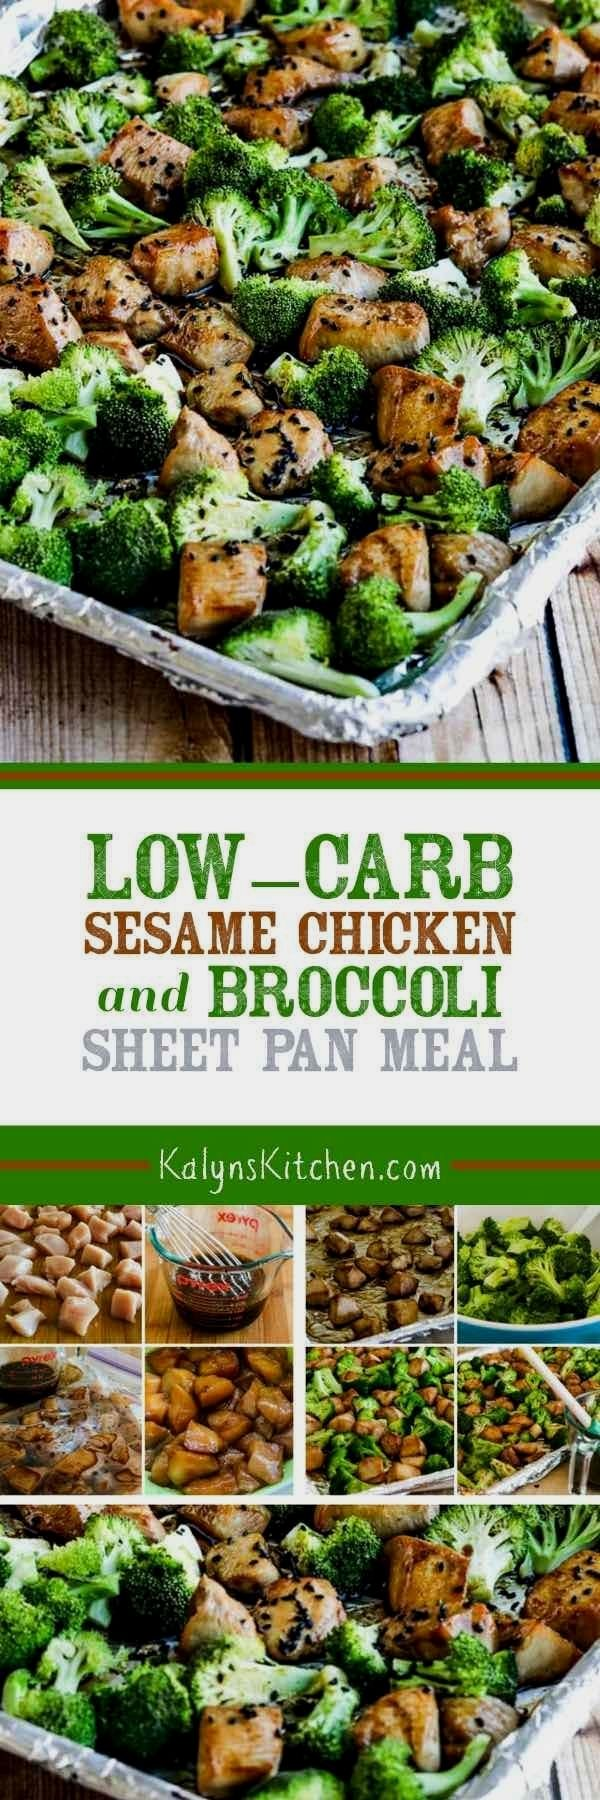 Sesame Chicken and Broccoli Sheet Pan Meal is a quick and easy dinner